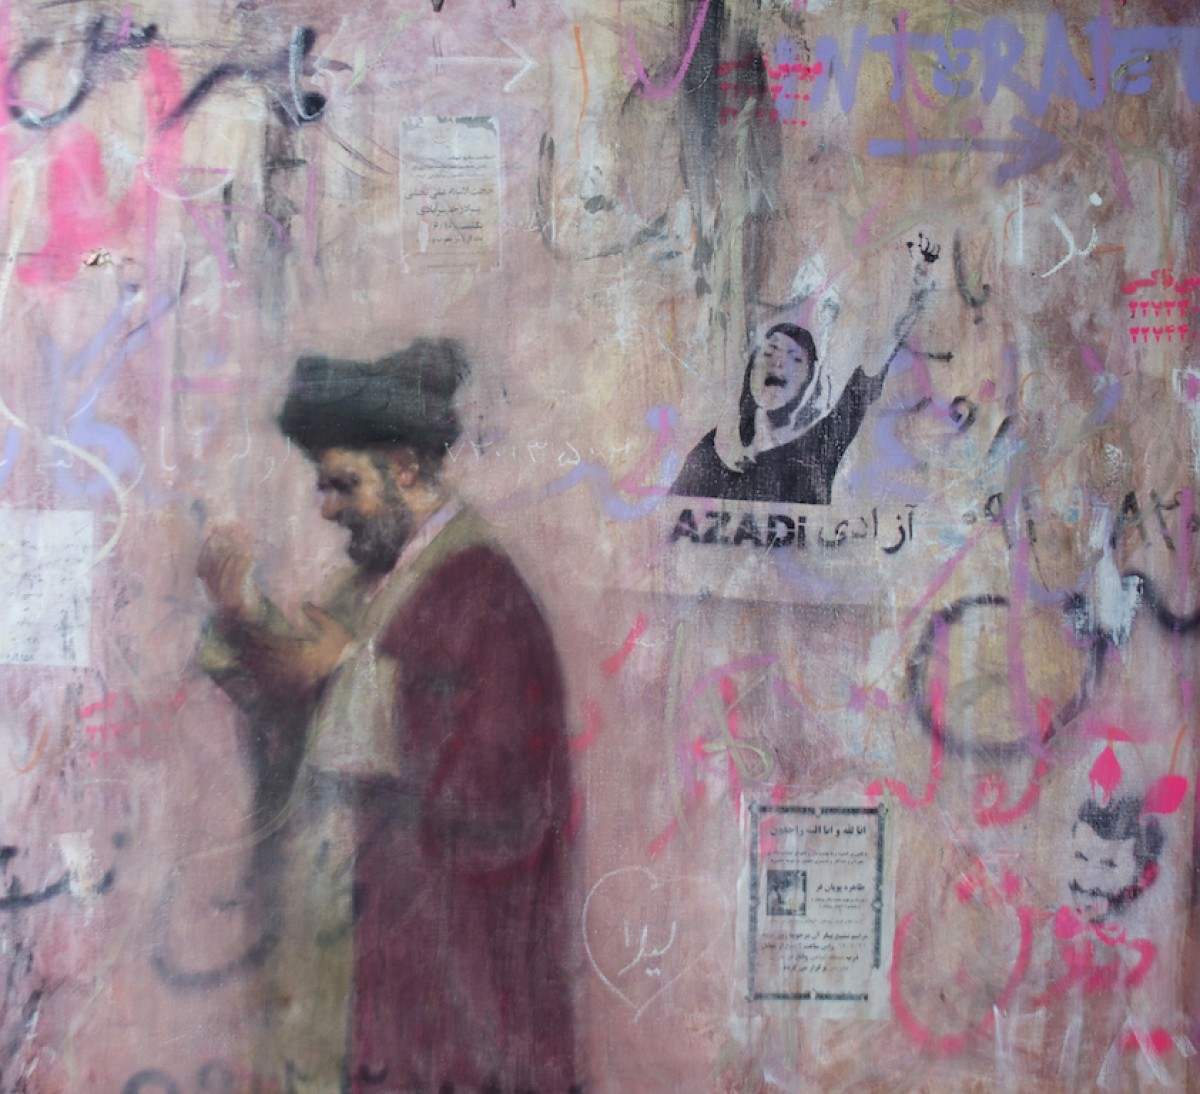 Darvish Fakhr 2014: Mullah against Pink Wall, aka Freedom, oil on linen, 151 x 173 cm